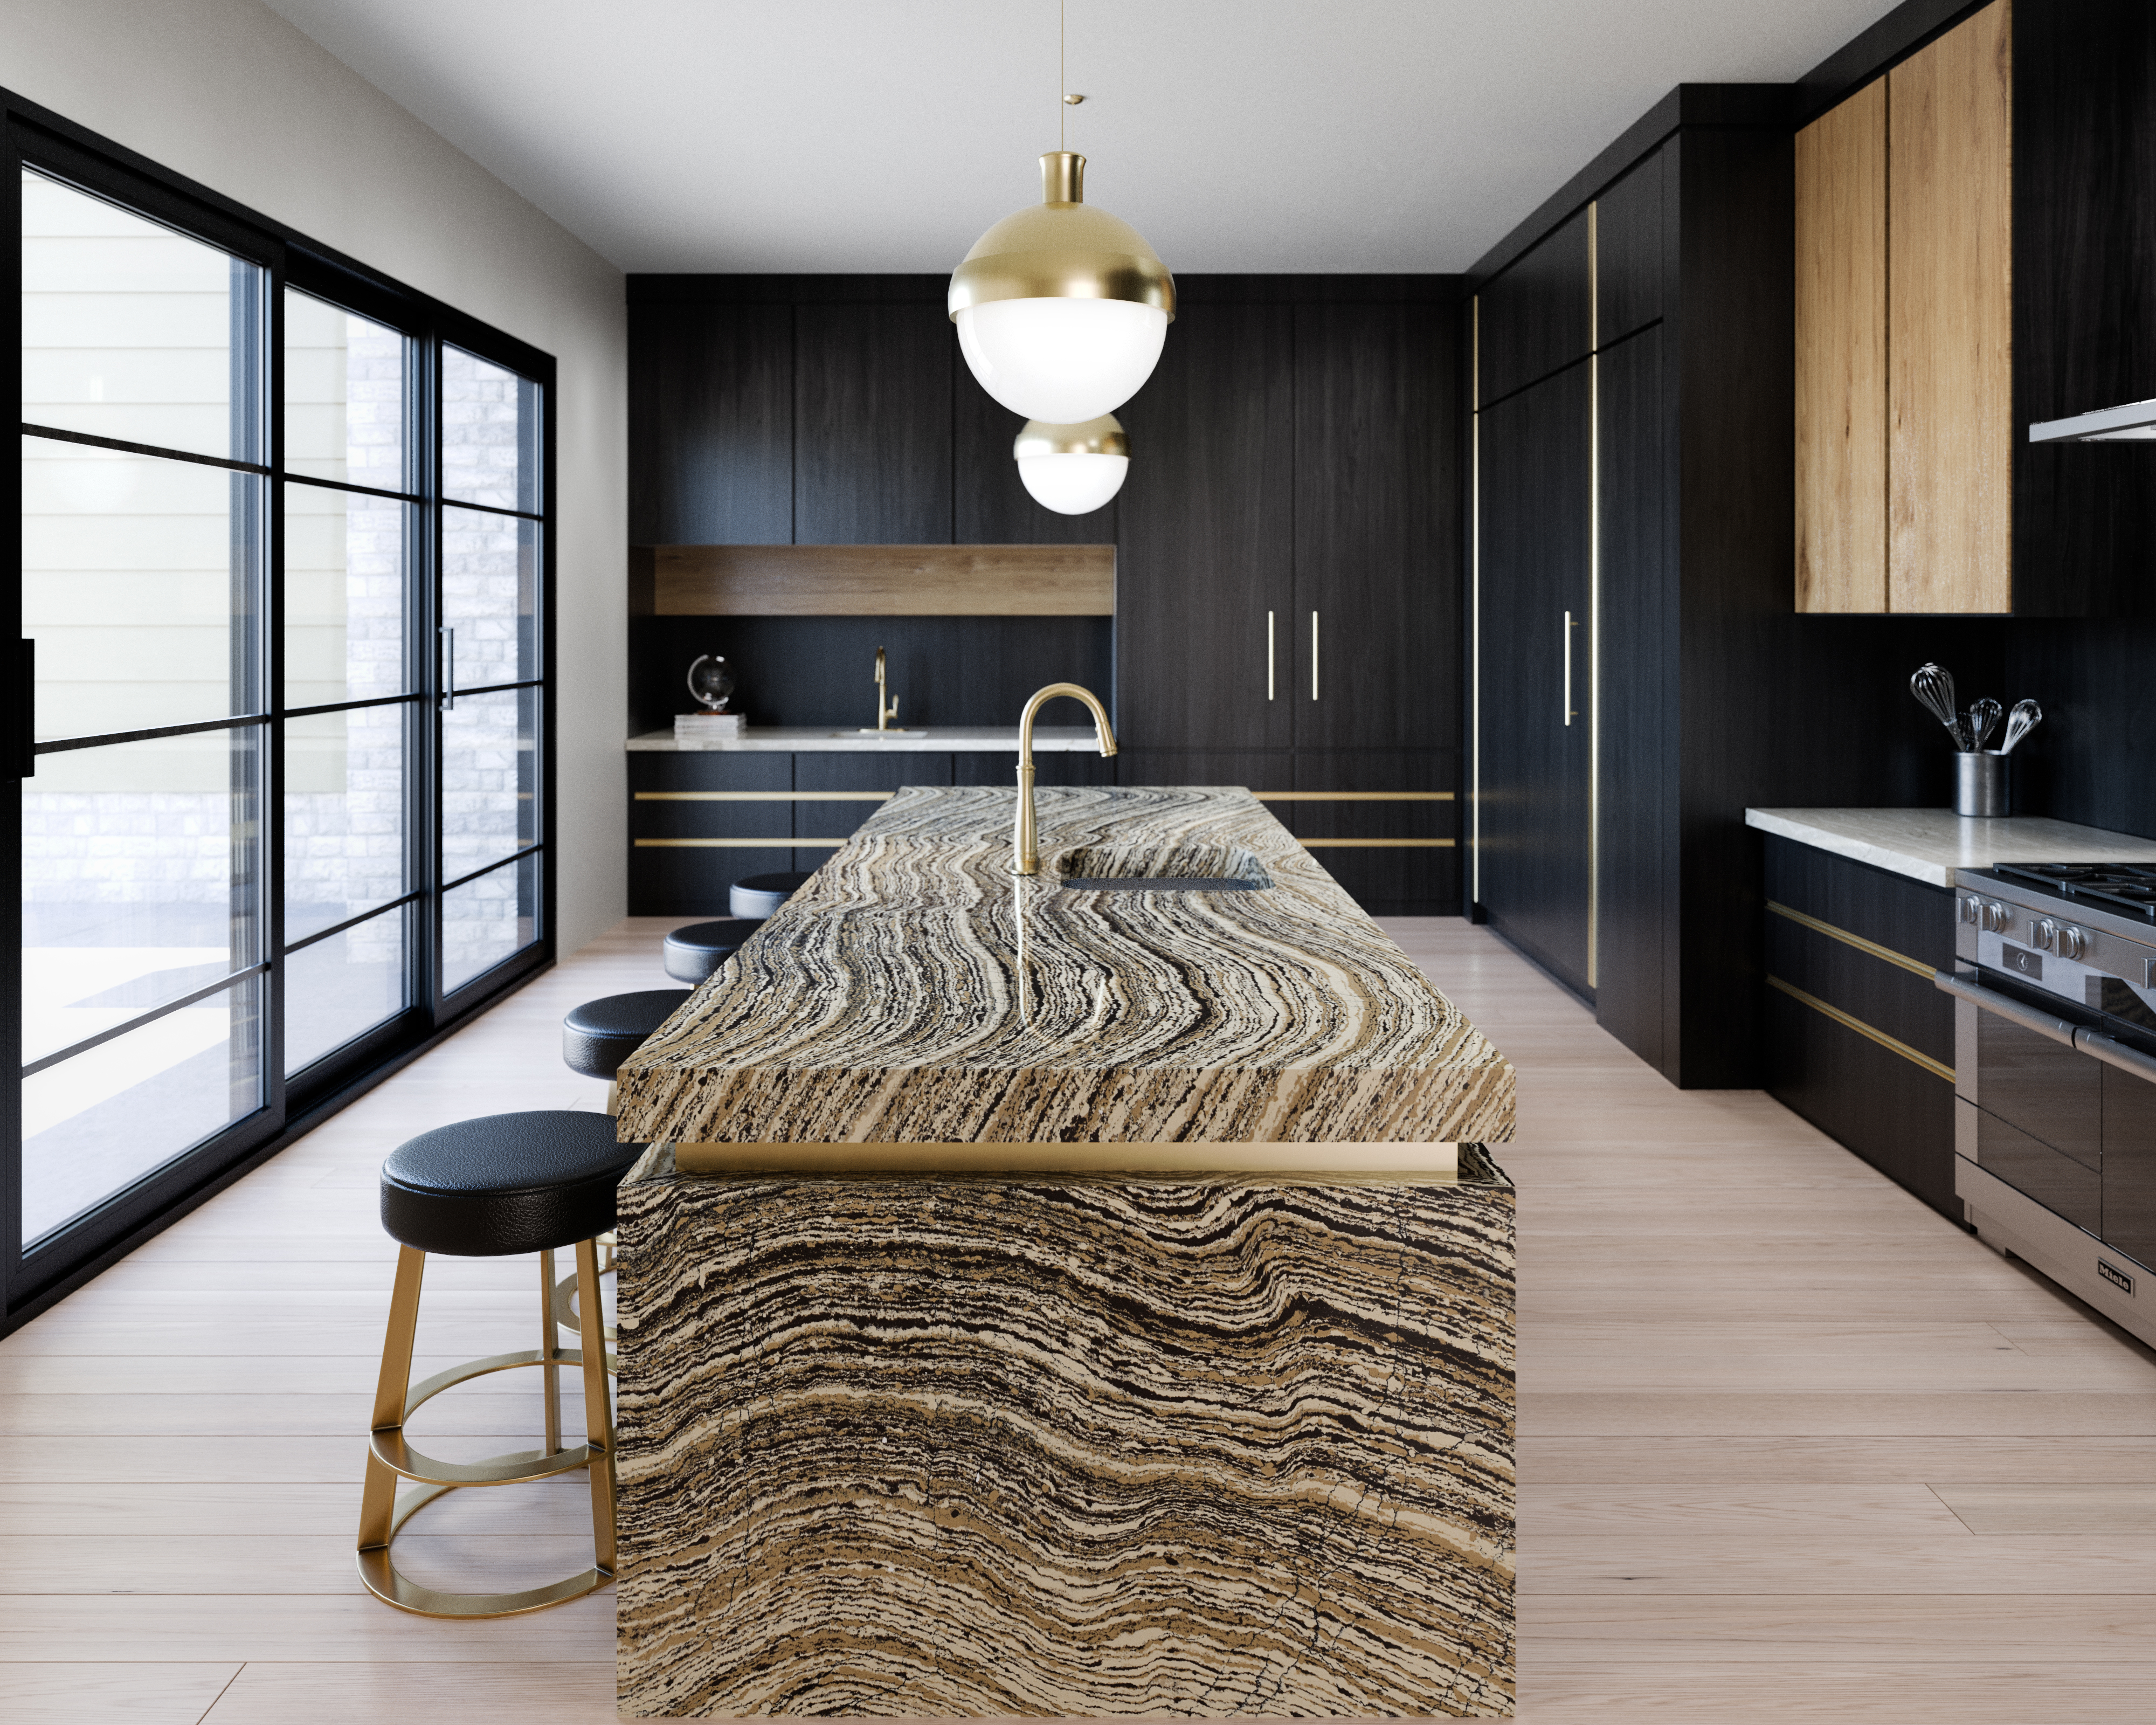 Cambria Introduces New Stone And Wood Look Surfacing